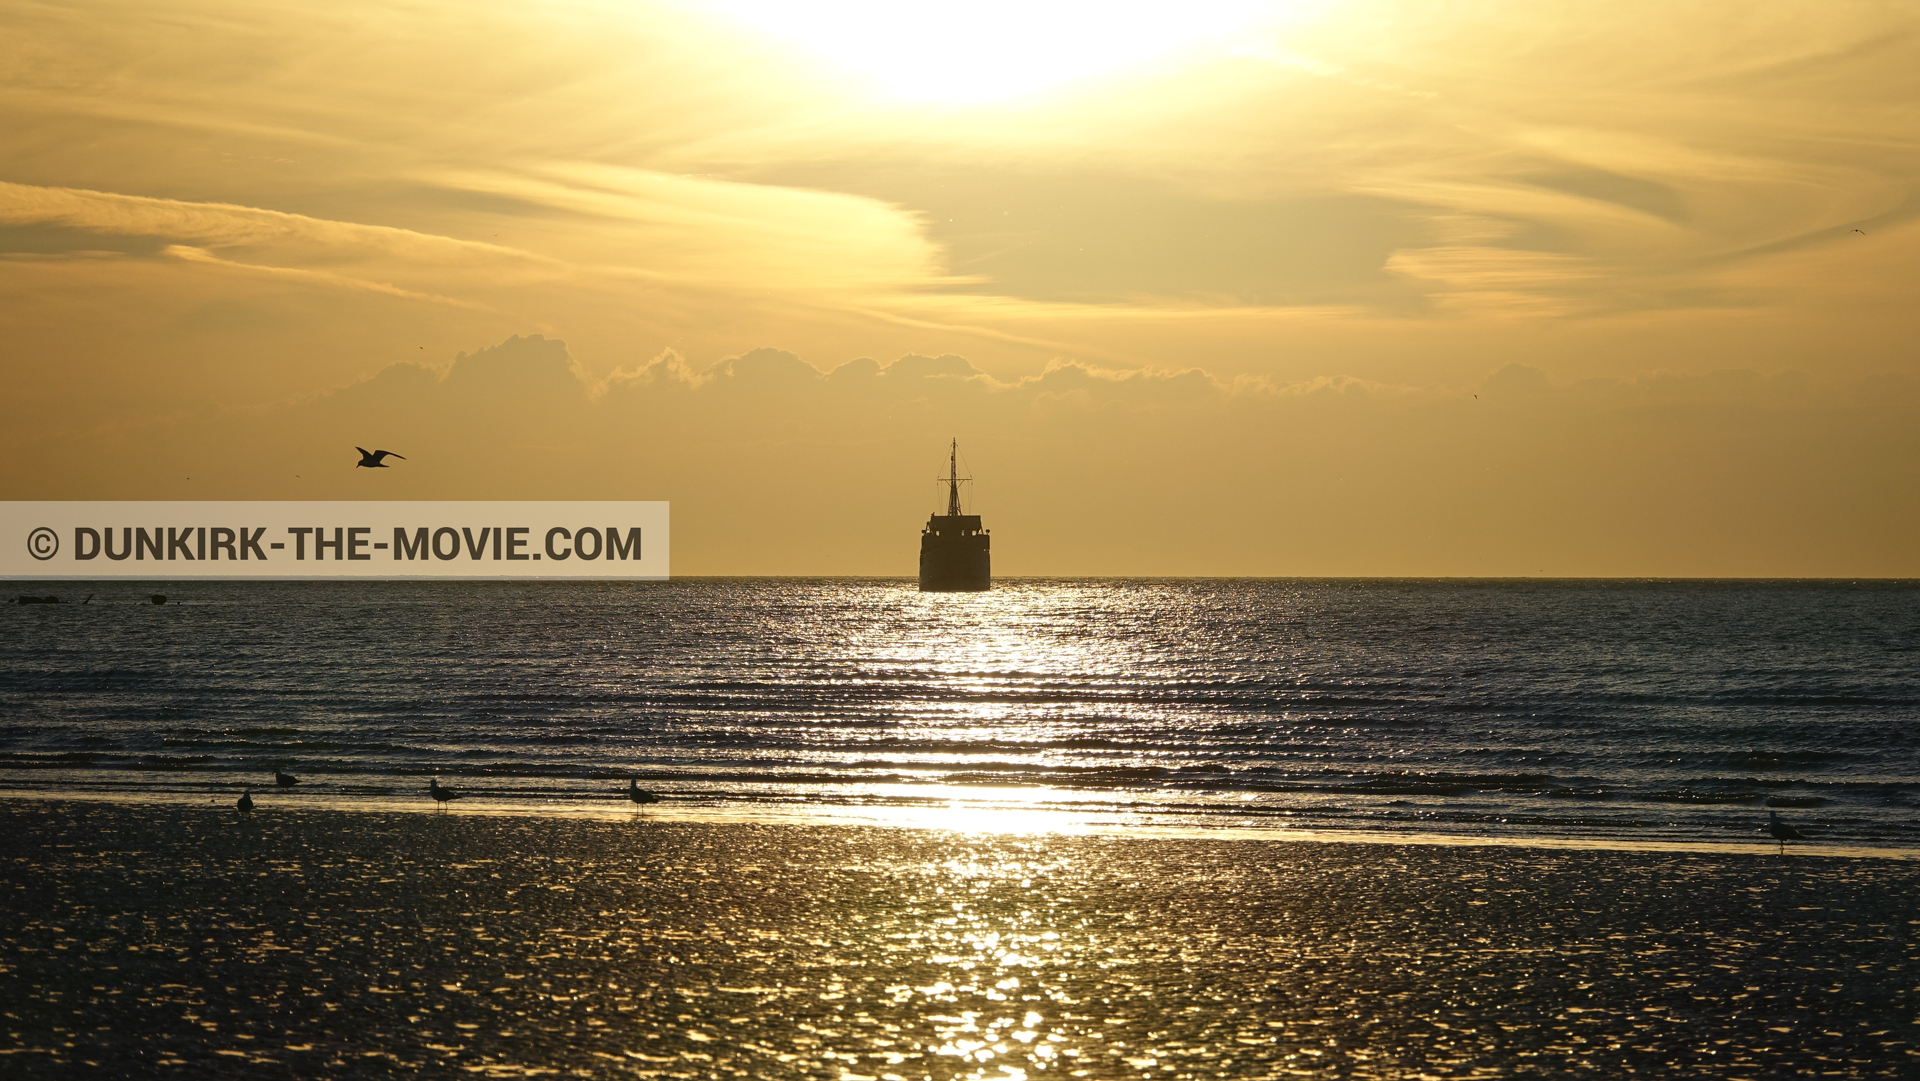 Picture with beach, calm sea, orange sky, boat,  from behind the scene of the Dunkirk movie by Nolan